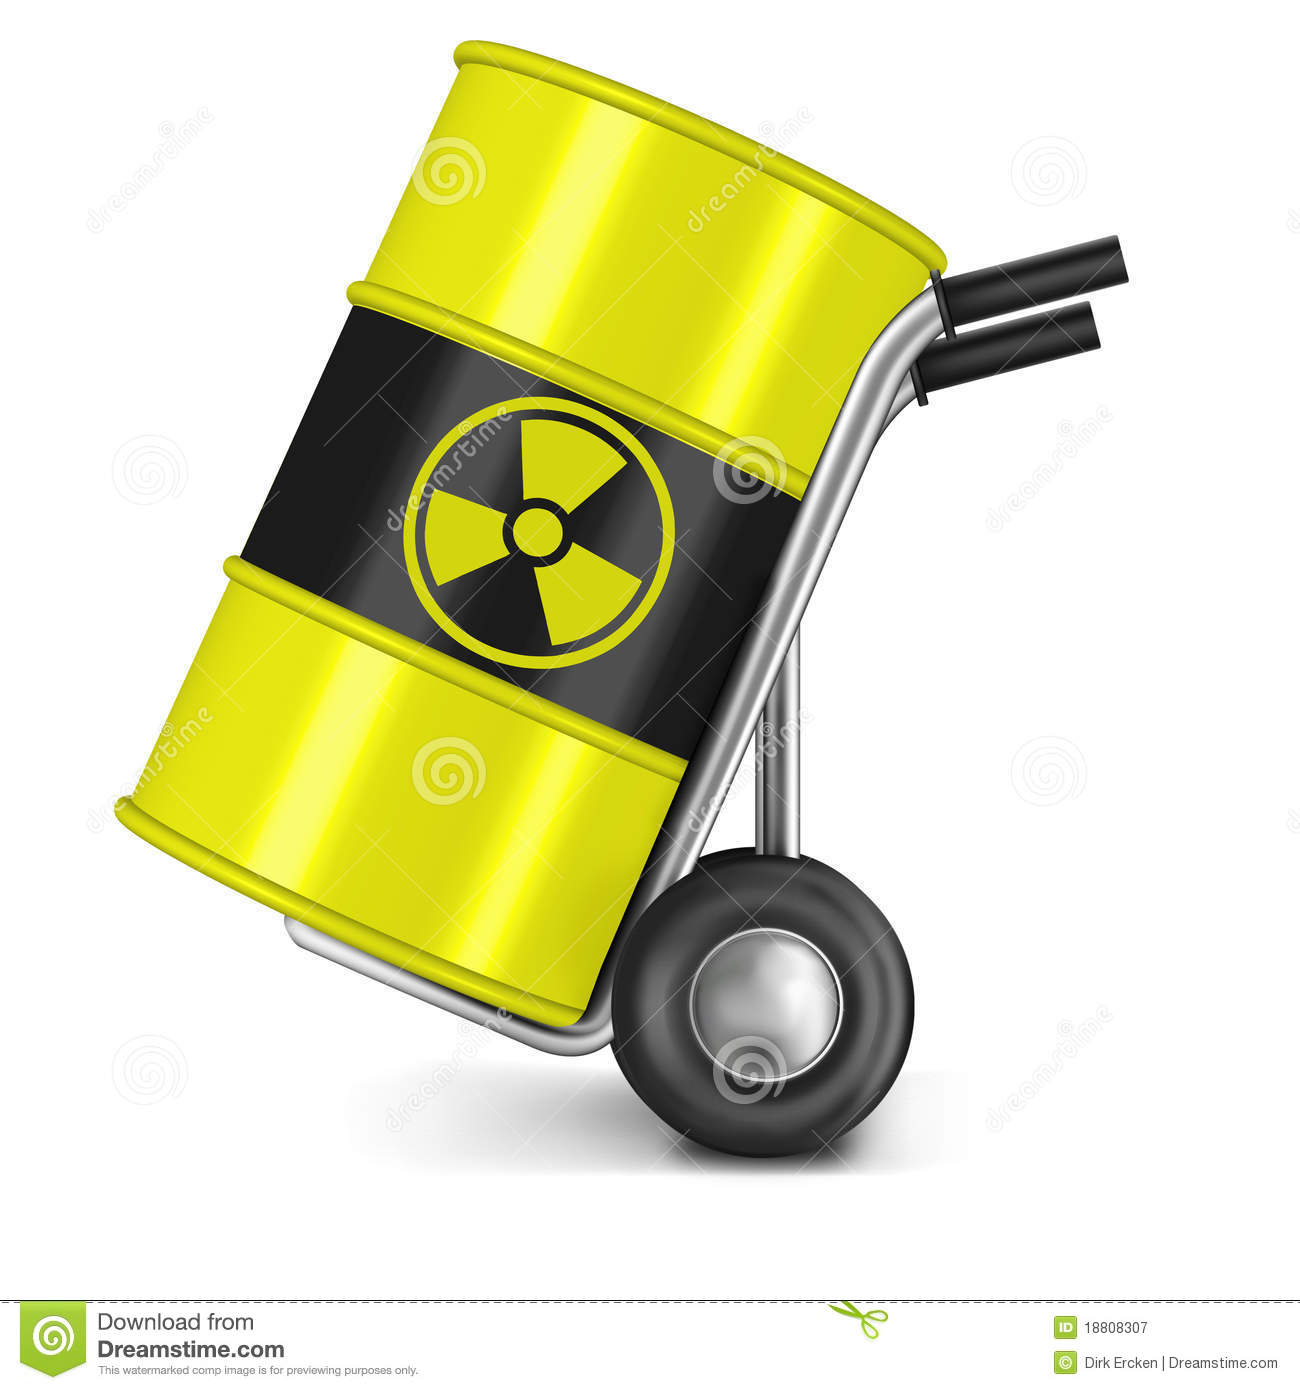 Barrel Nuclear Waste Pollution Risk Radioactive Stock Photography.